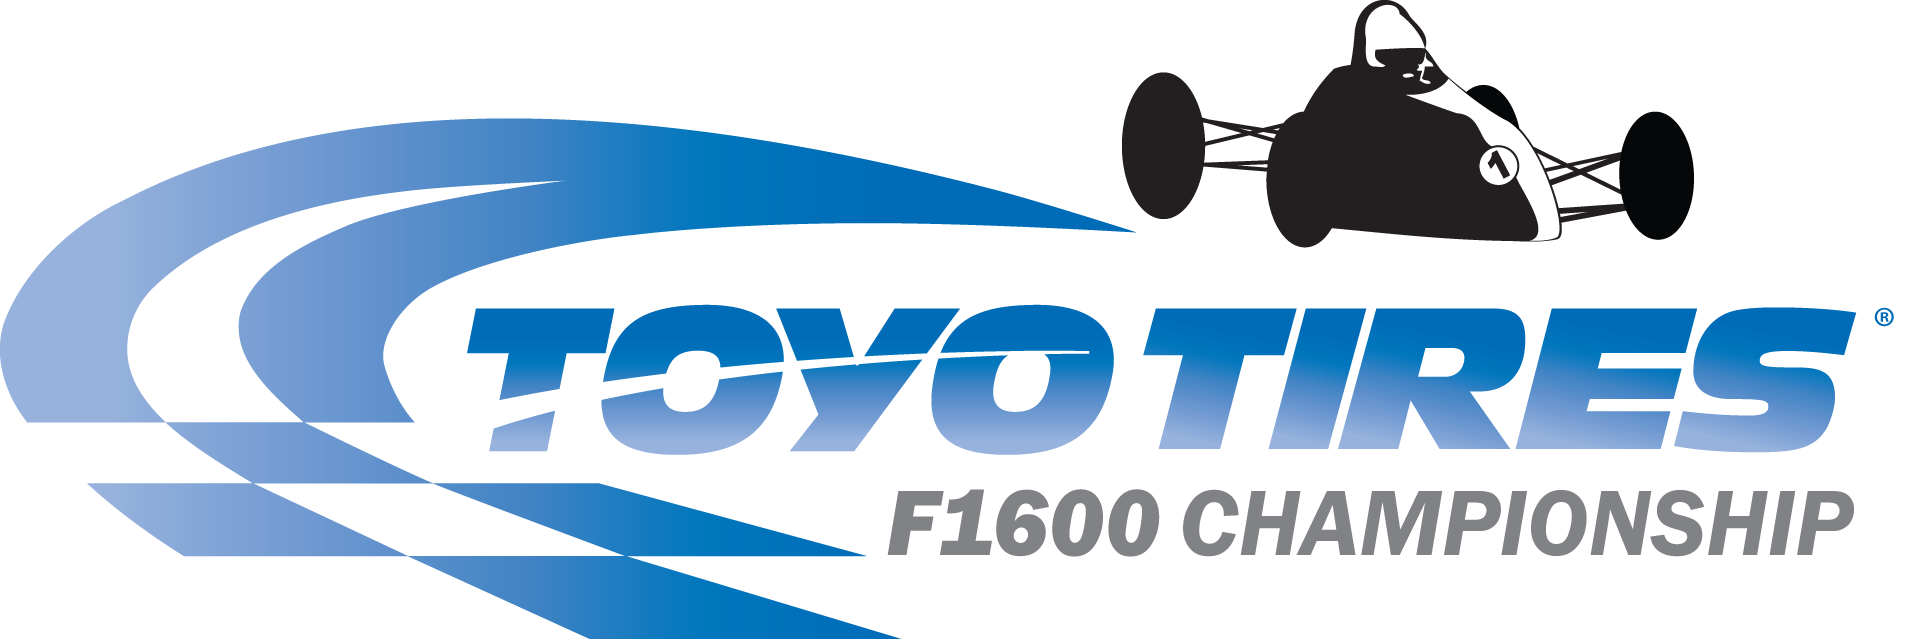 Toyo tires logo clipart jpg royalty free Drivers > Toyo Tires F1600 Championship Series jpg royalty free